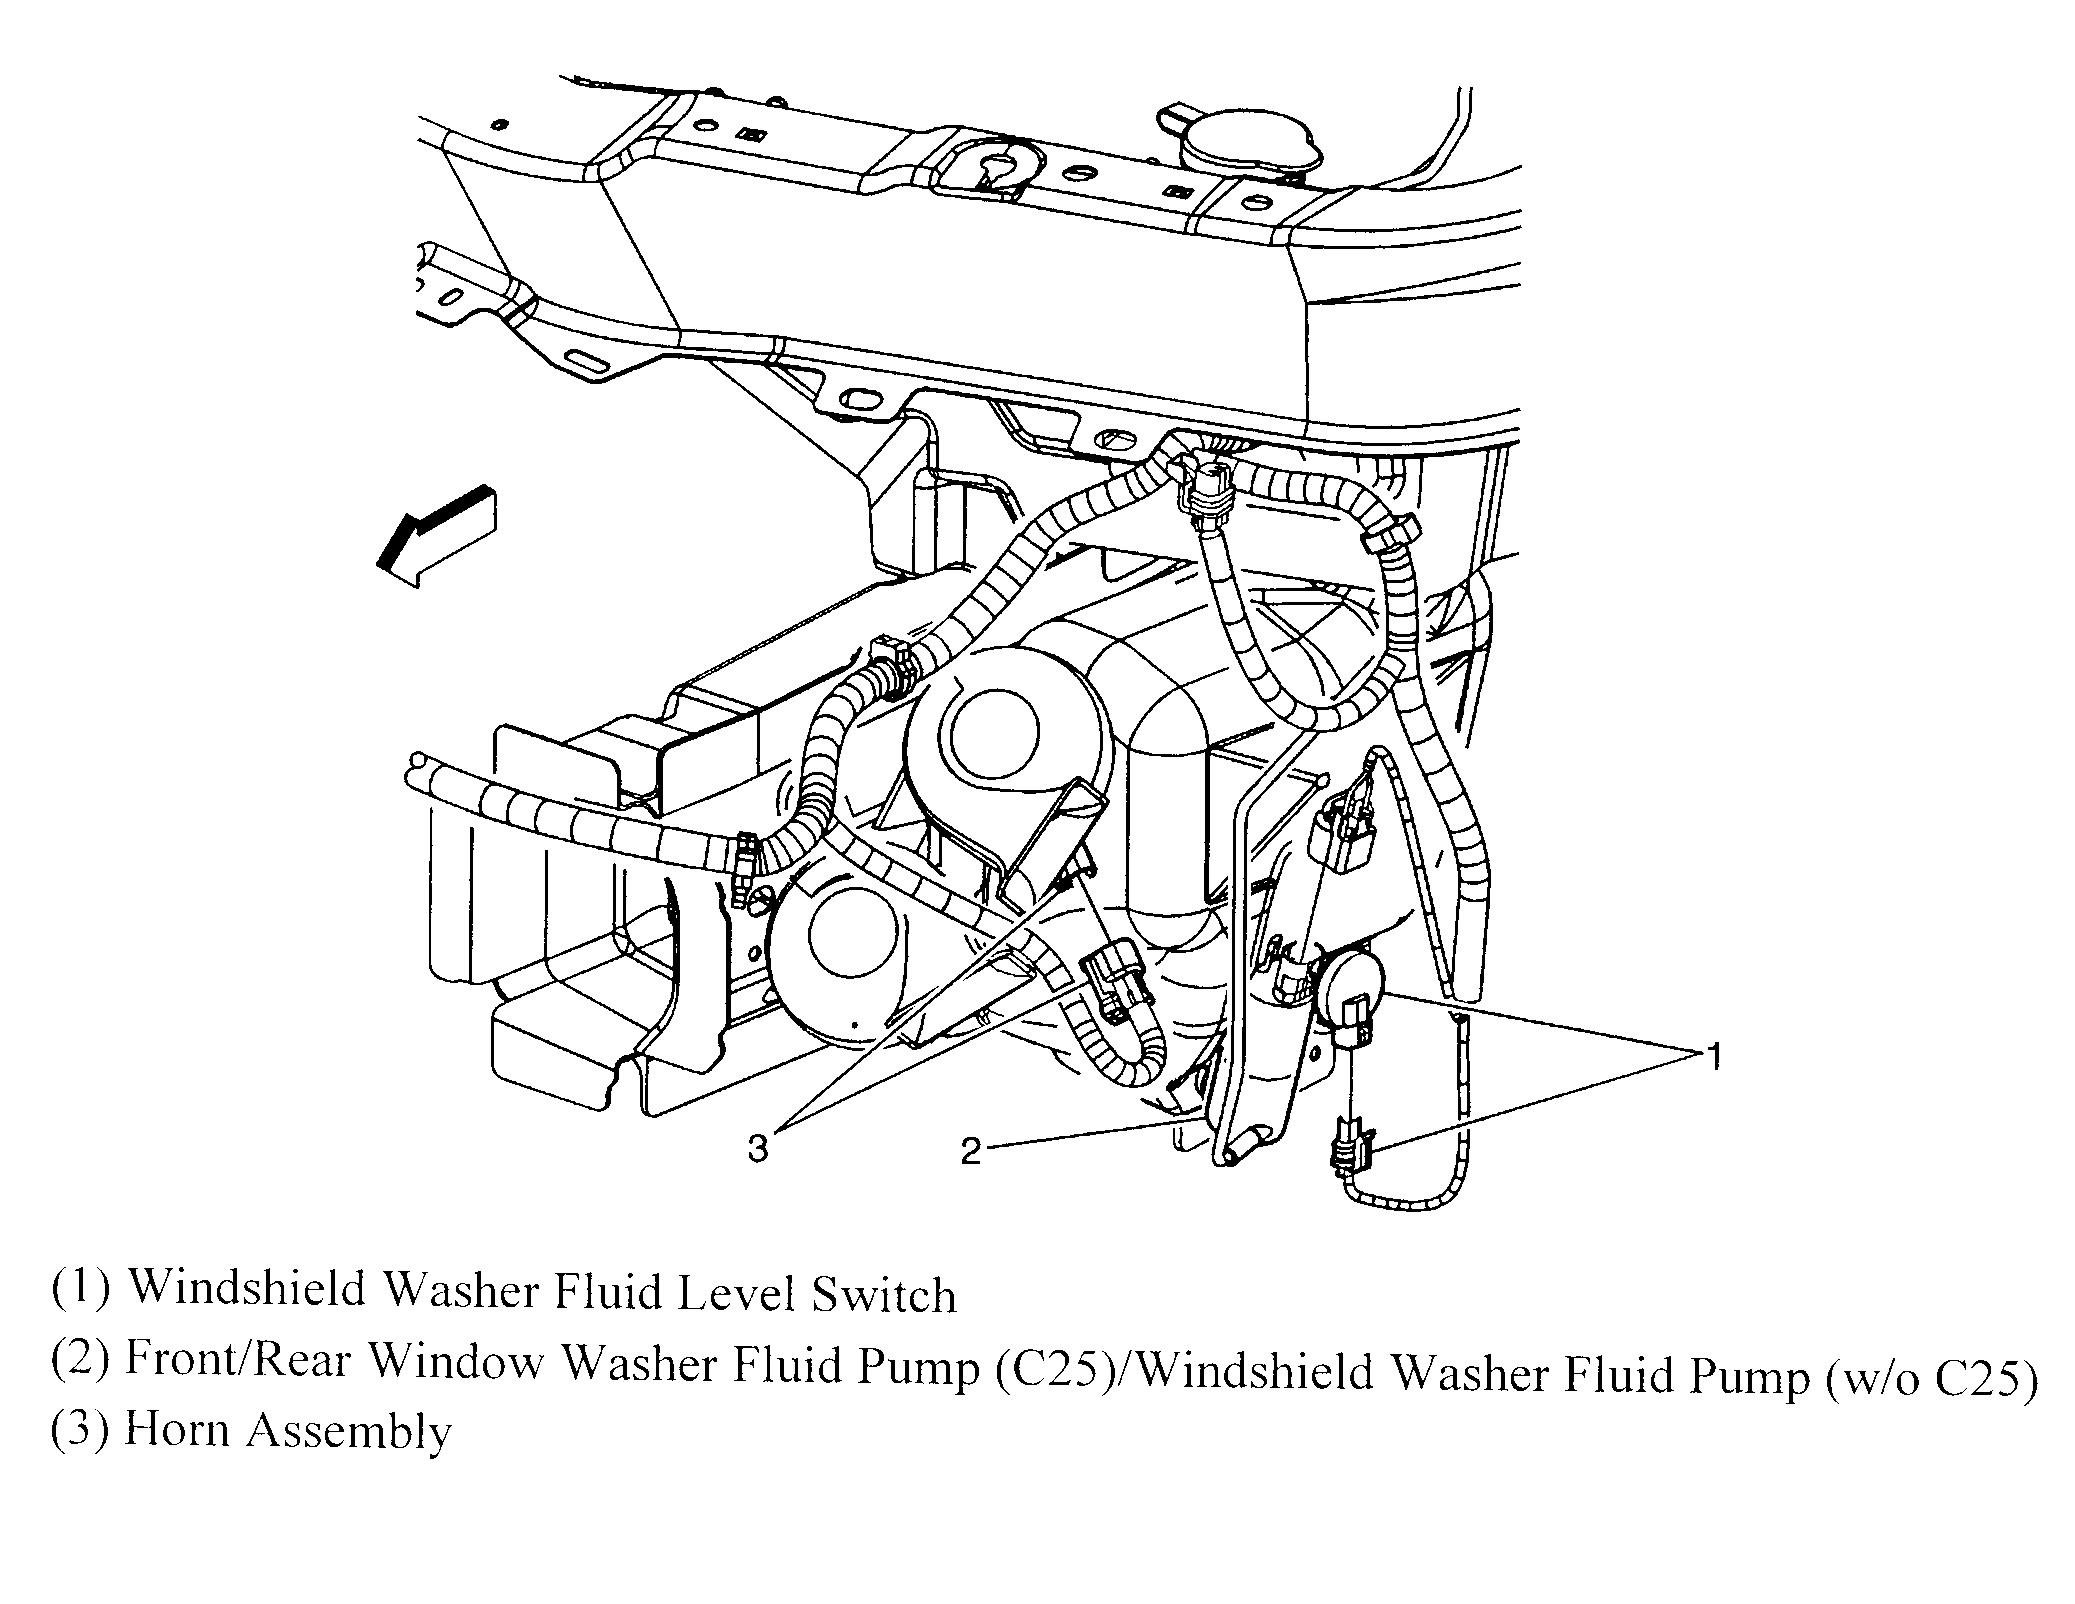 2007 Saturn Ion Fuel Pump Wire Diagram Wiring For 2006 Pontiac G6 Get Free Image About Parts